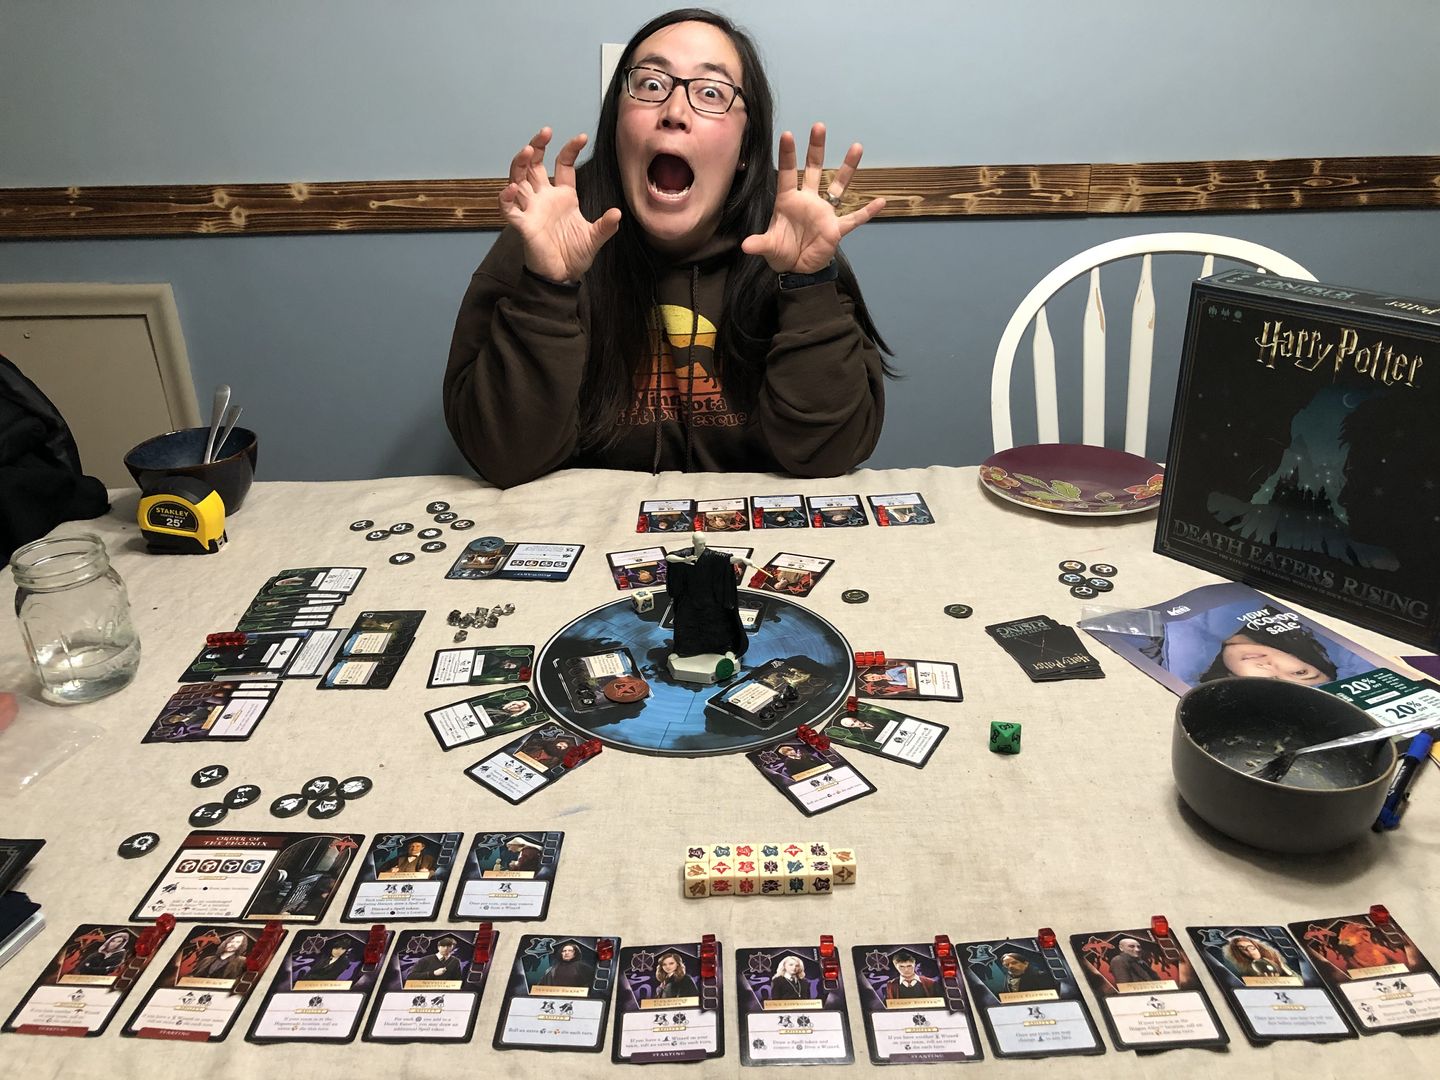 Harry Potter game night